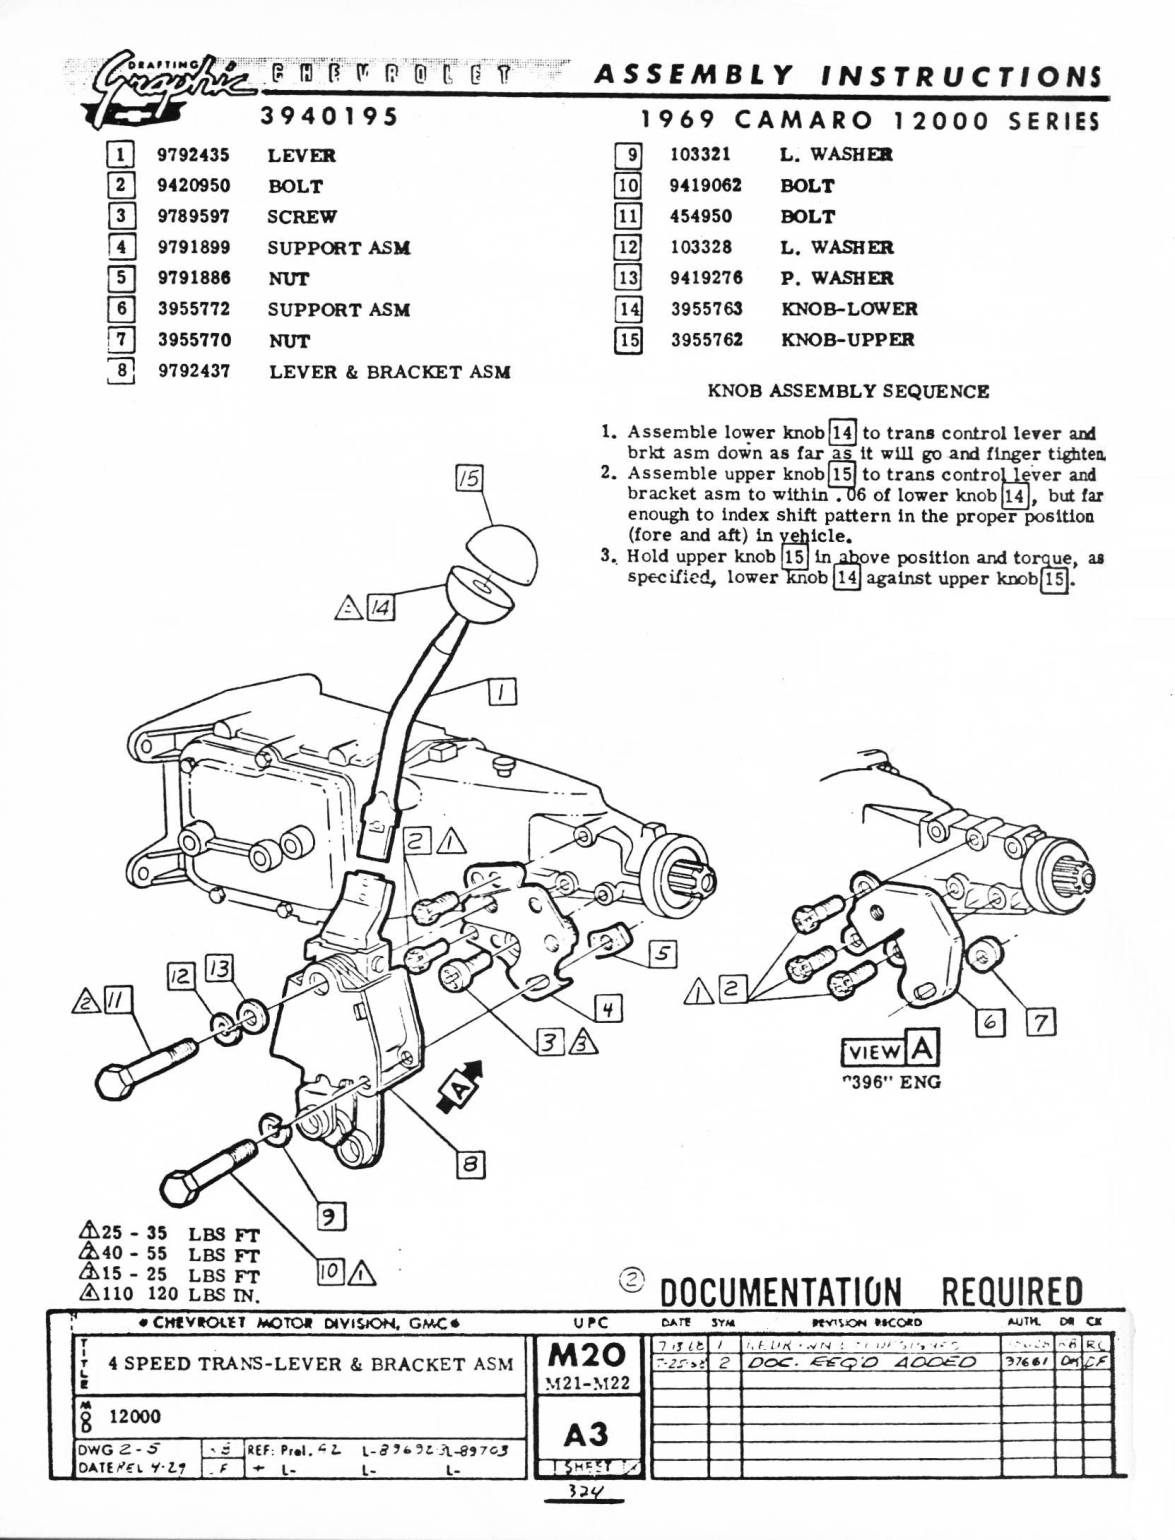 Crg Research Report 1967 69 Camaro Manual Transmission Floor Shifters 67 Wiring Diagram Engine C Apartment Shifter Aim